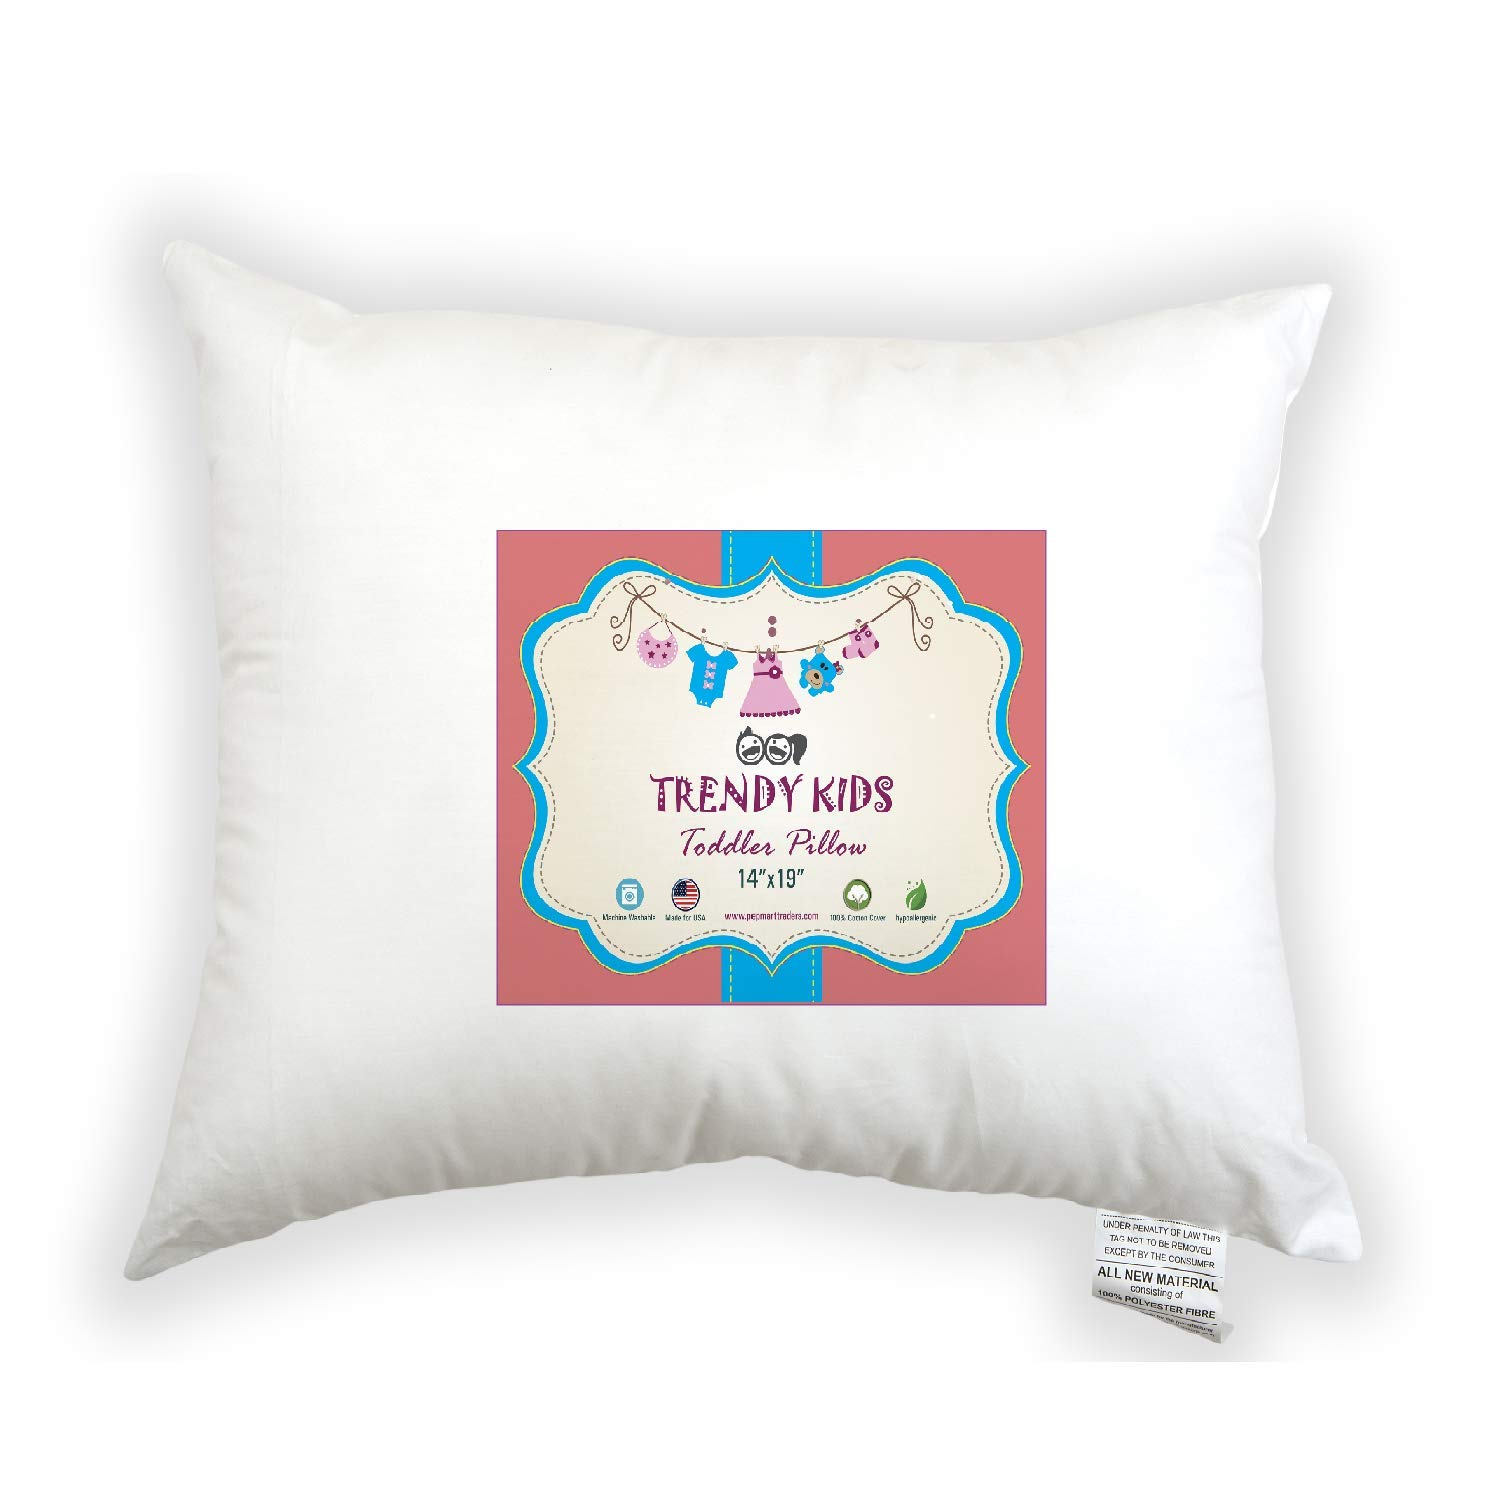 Trendy Kids Toddler Pillow 14x19 100/% Cotton Baby//Toddler//Travel Pillow Percale Machine Washable and Hypoallergenic No Extra Pillowcase//Sham Needed Perfect for Kids Infant